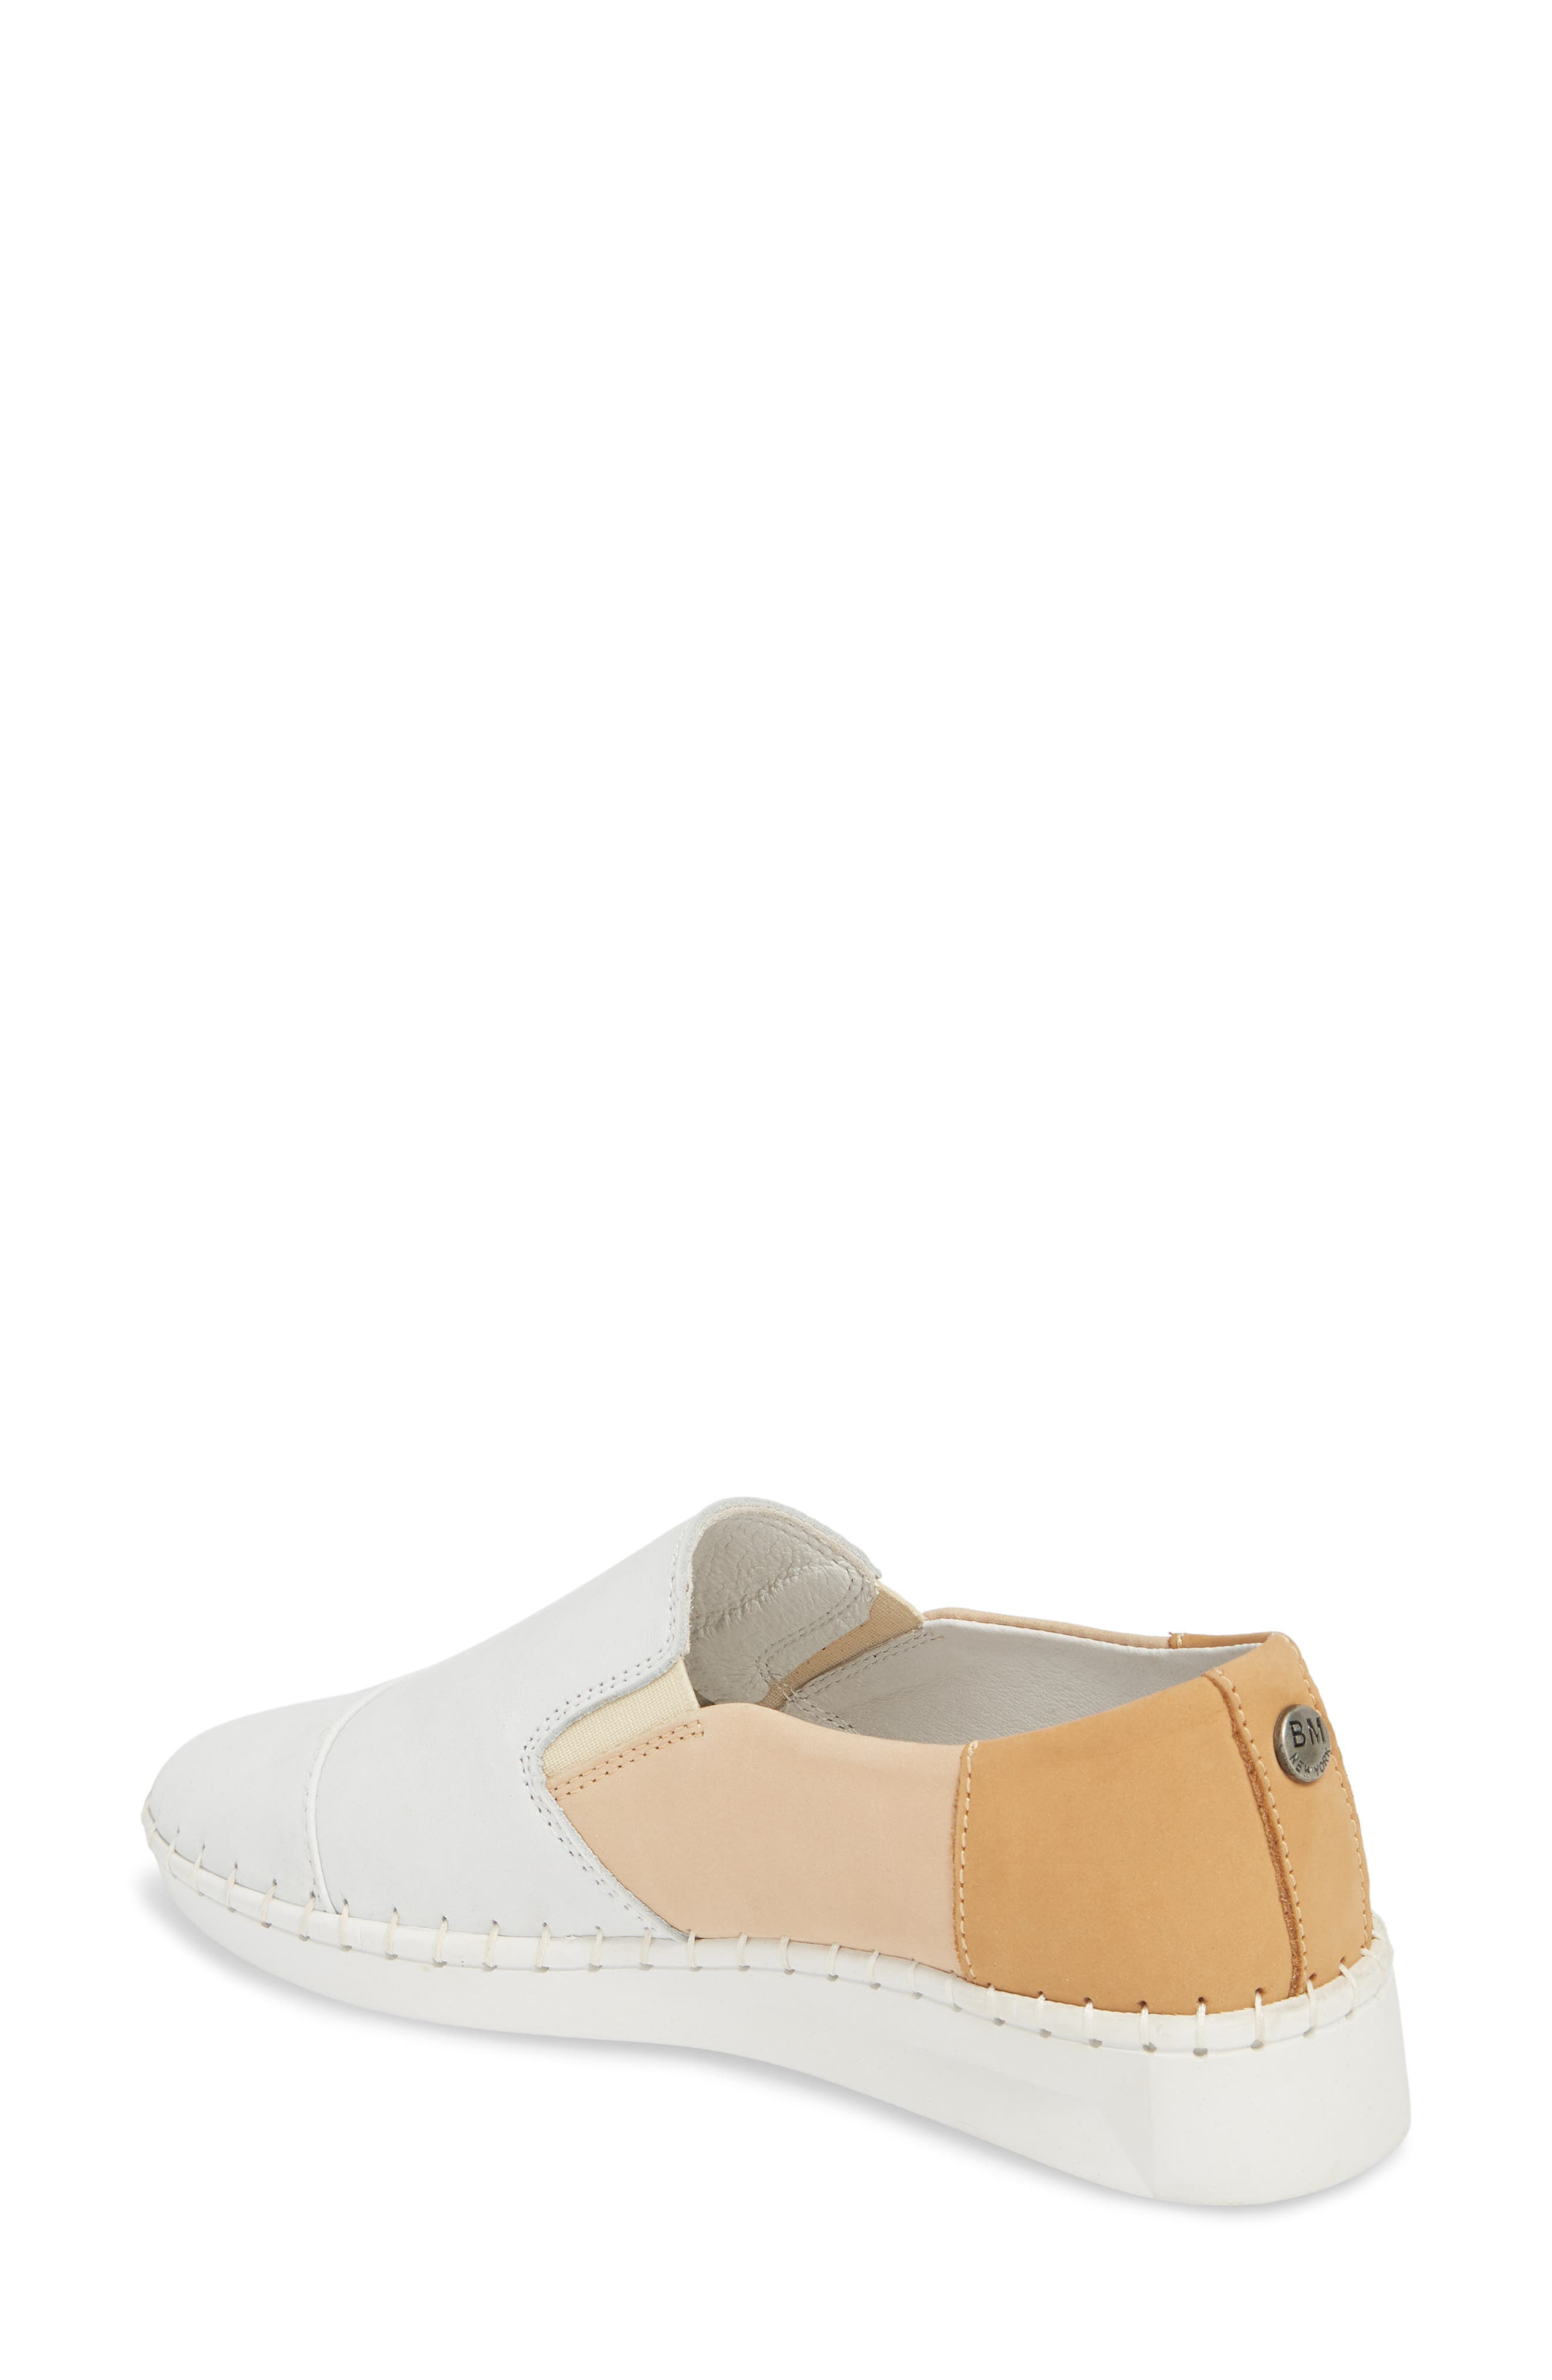 TW107 Slip-On Flat,                             Alternate thumbnail 2, color,                             NUDE MIX LEATHER